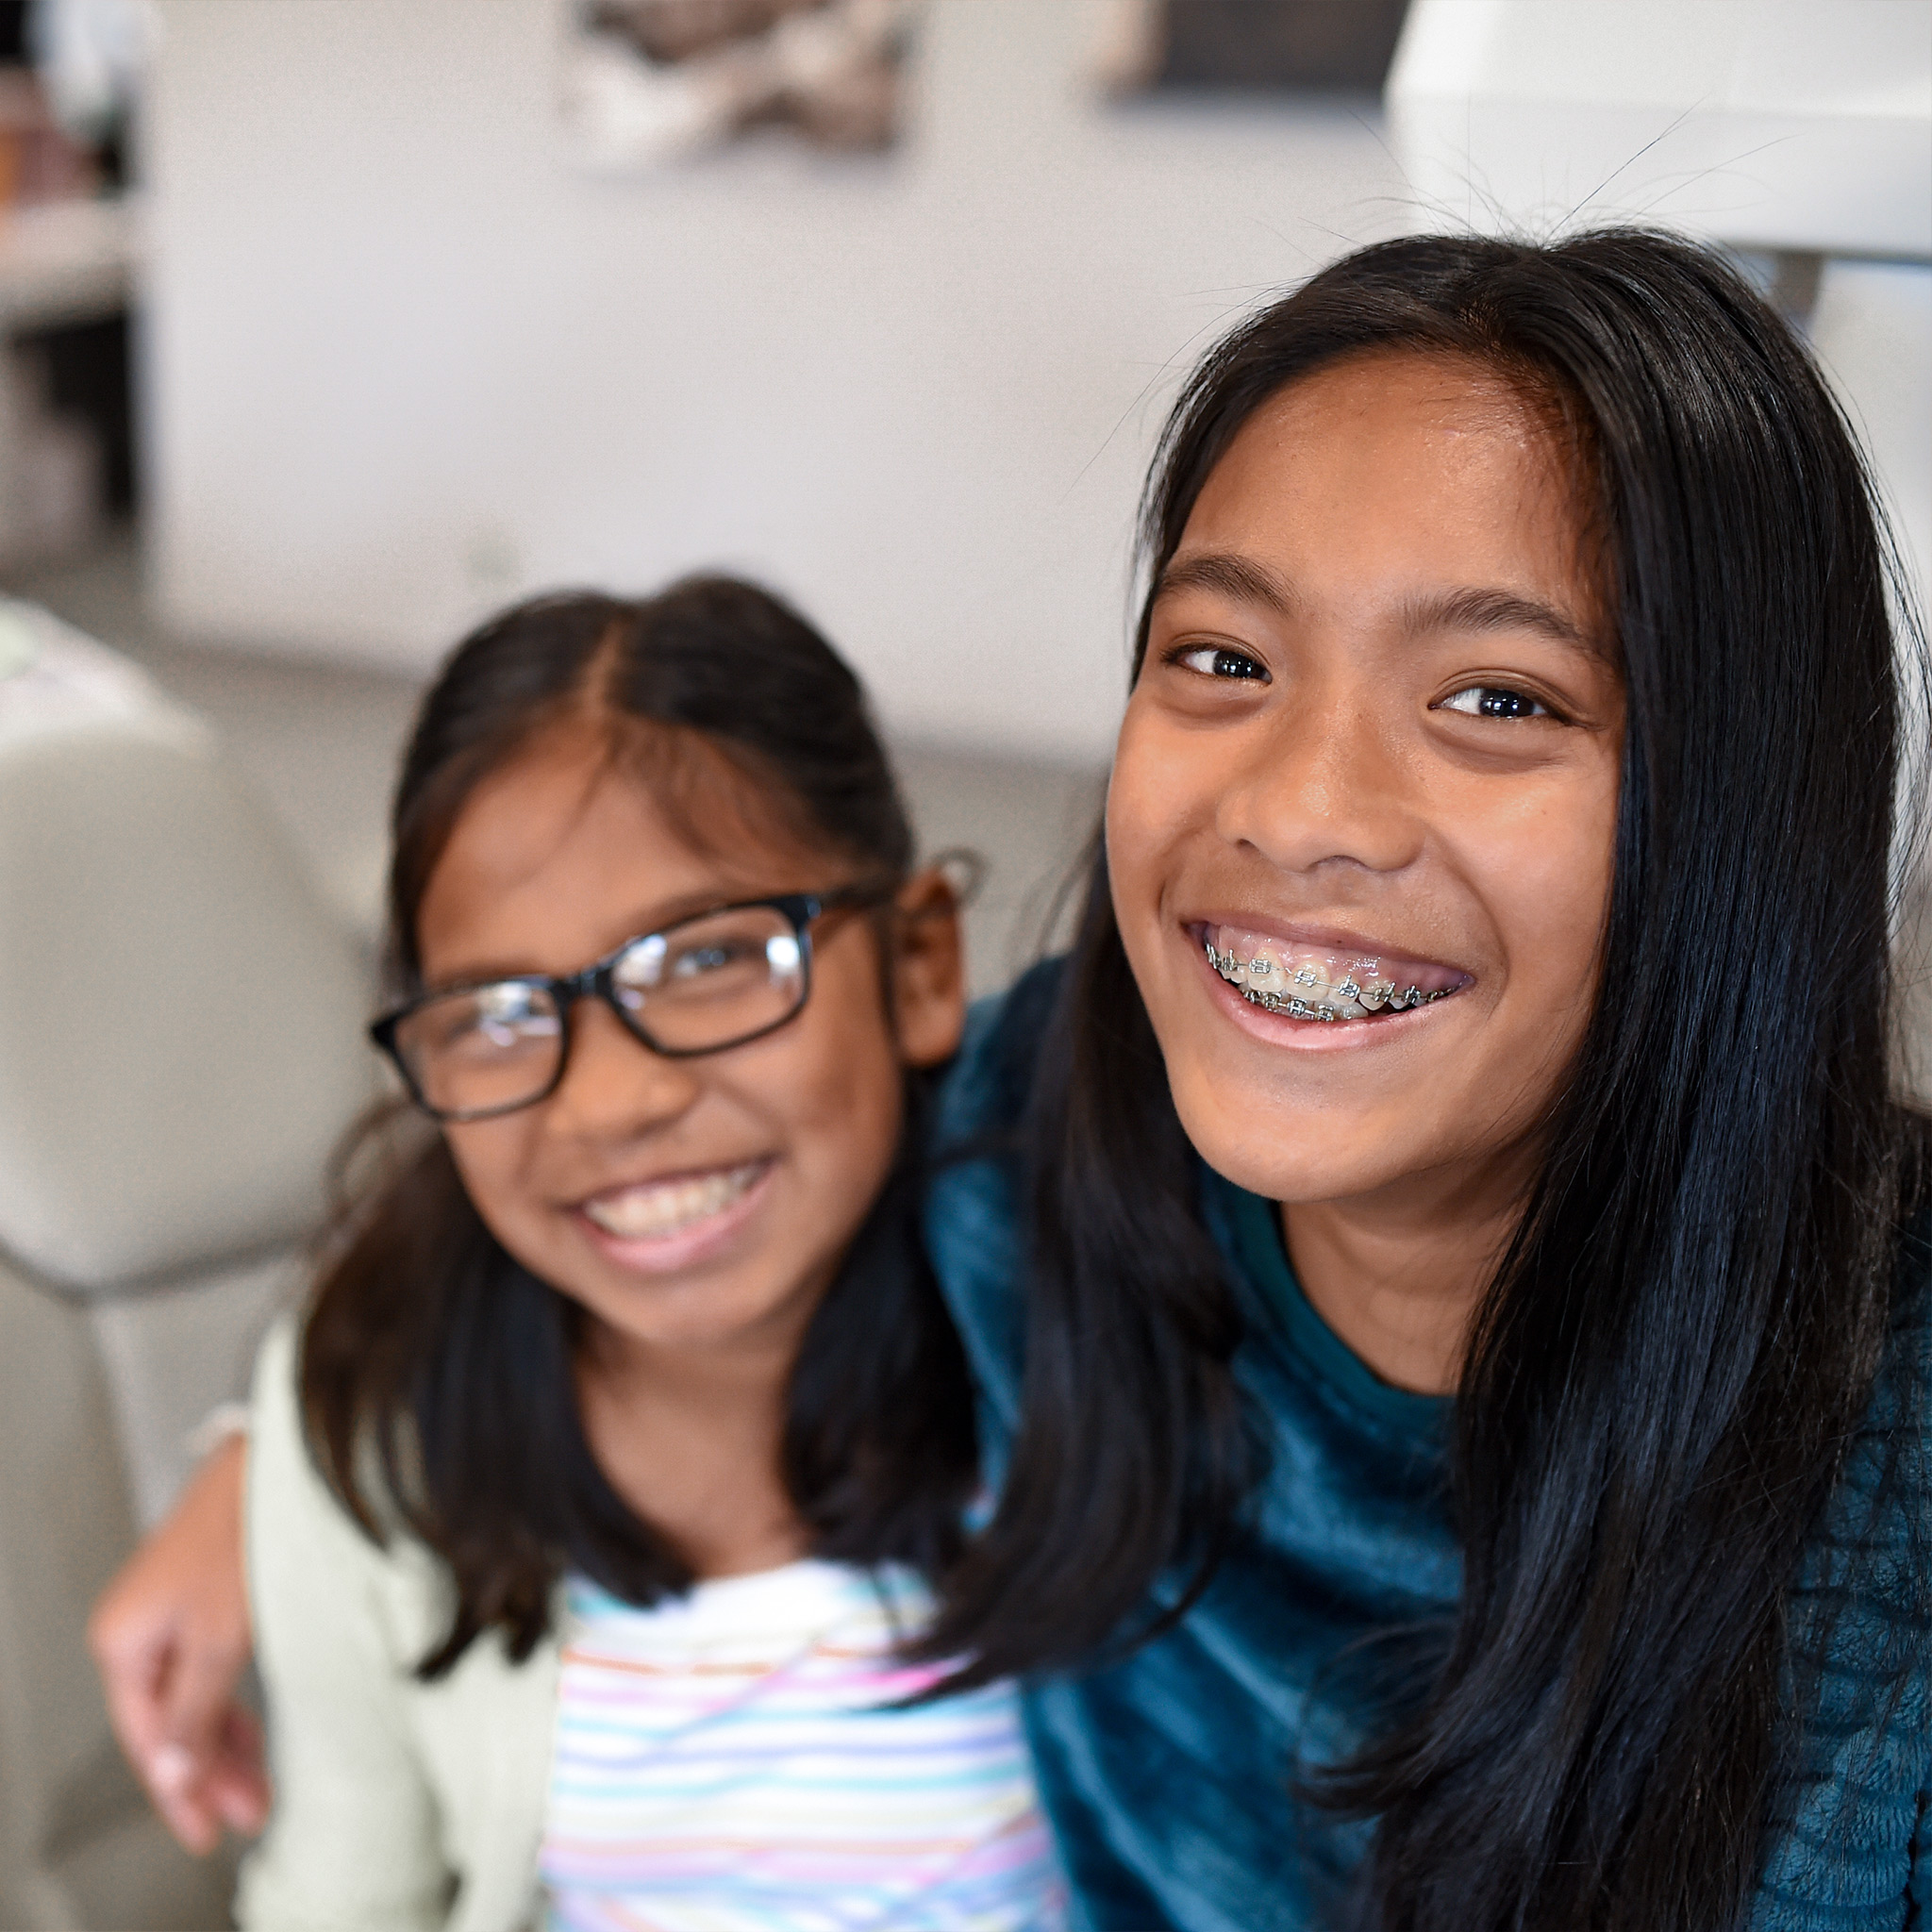 Young girl smiling with braces on sitting next to another young girl wearing glasses